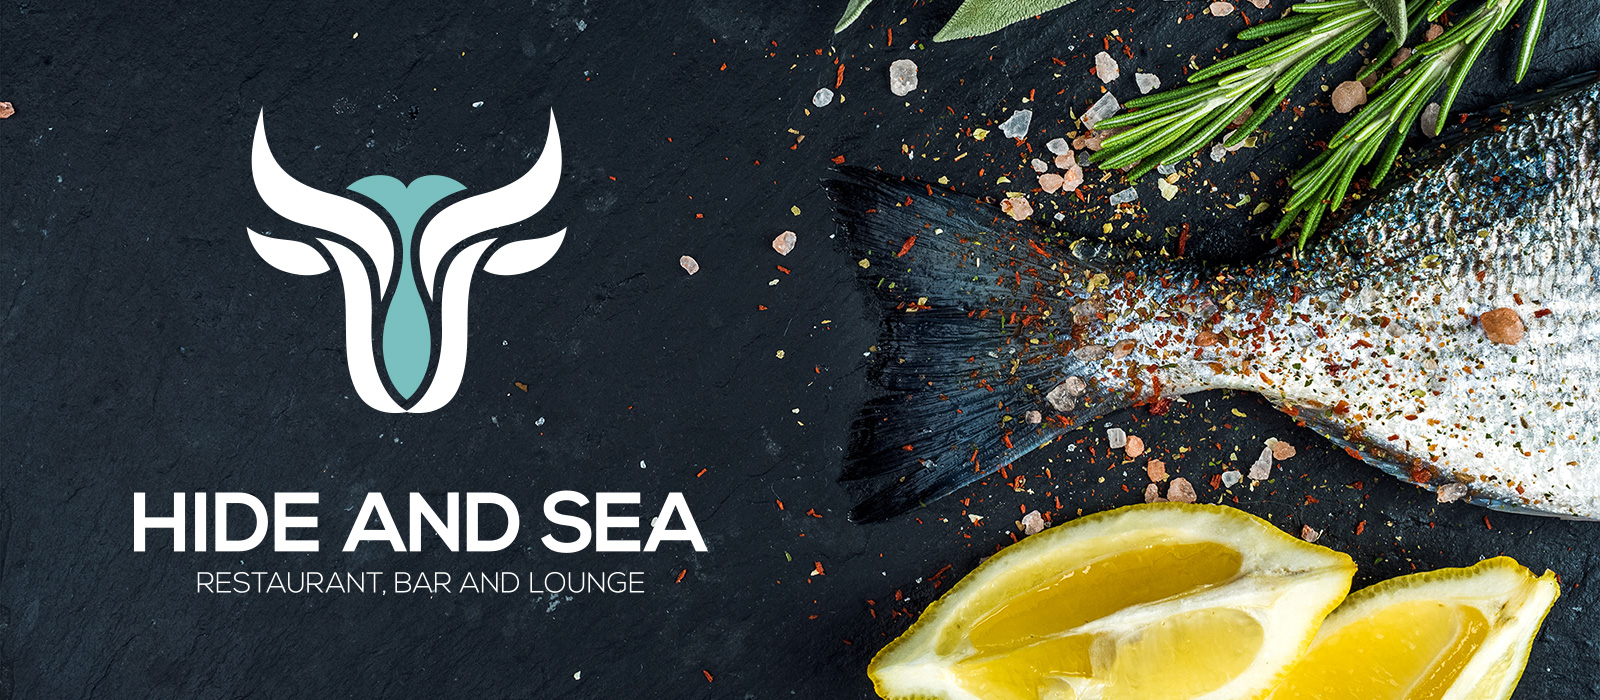 Hide and Sea Branding